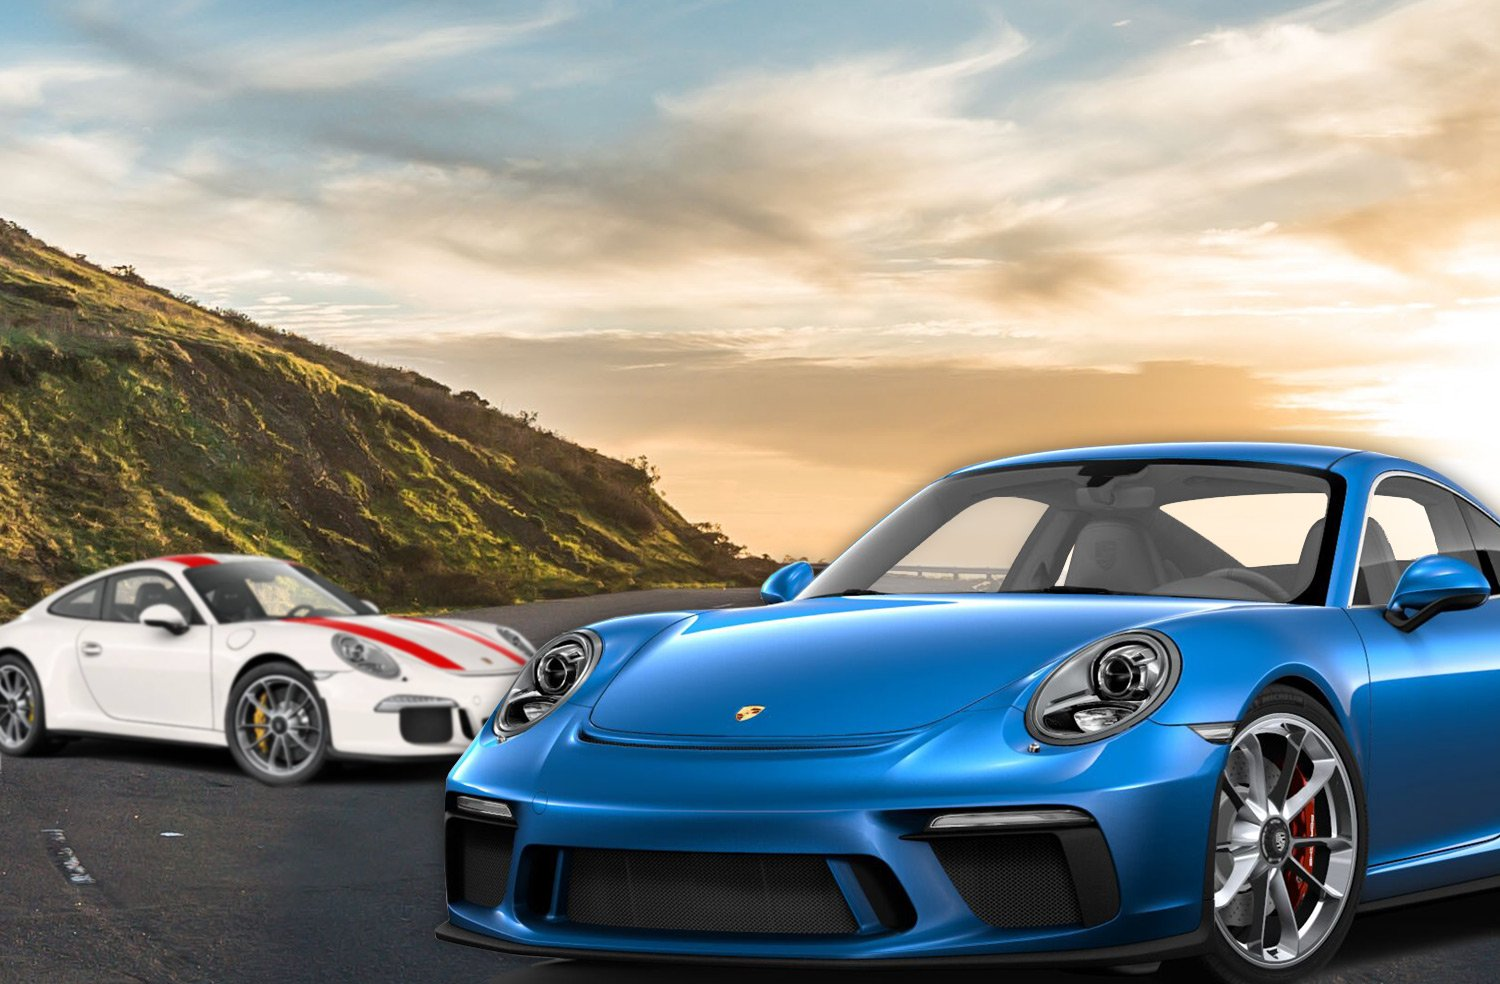 comparatif porsche 911 gt3 pack touring vs 911 r. Black Bedroom Furniture Sets. Home Design Ideas